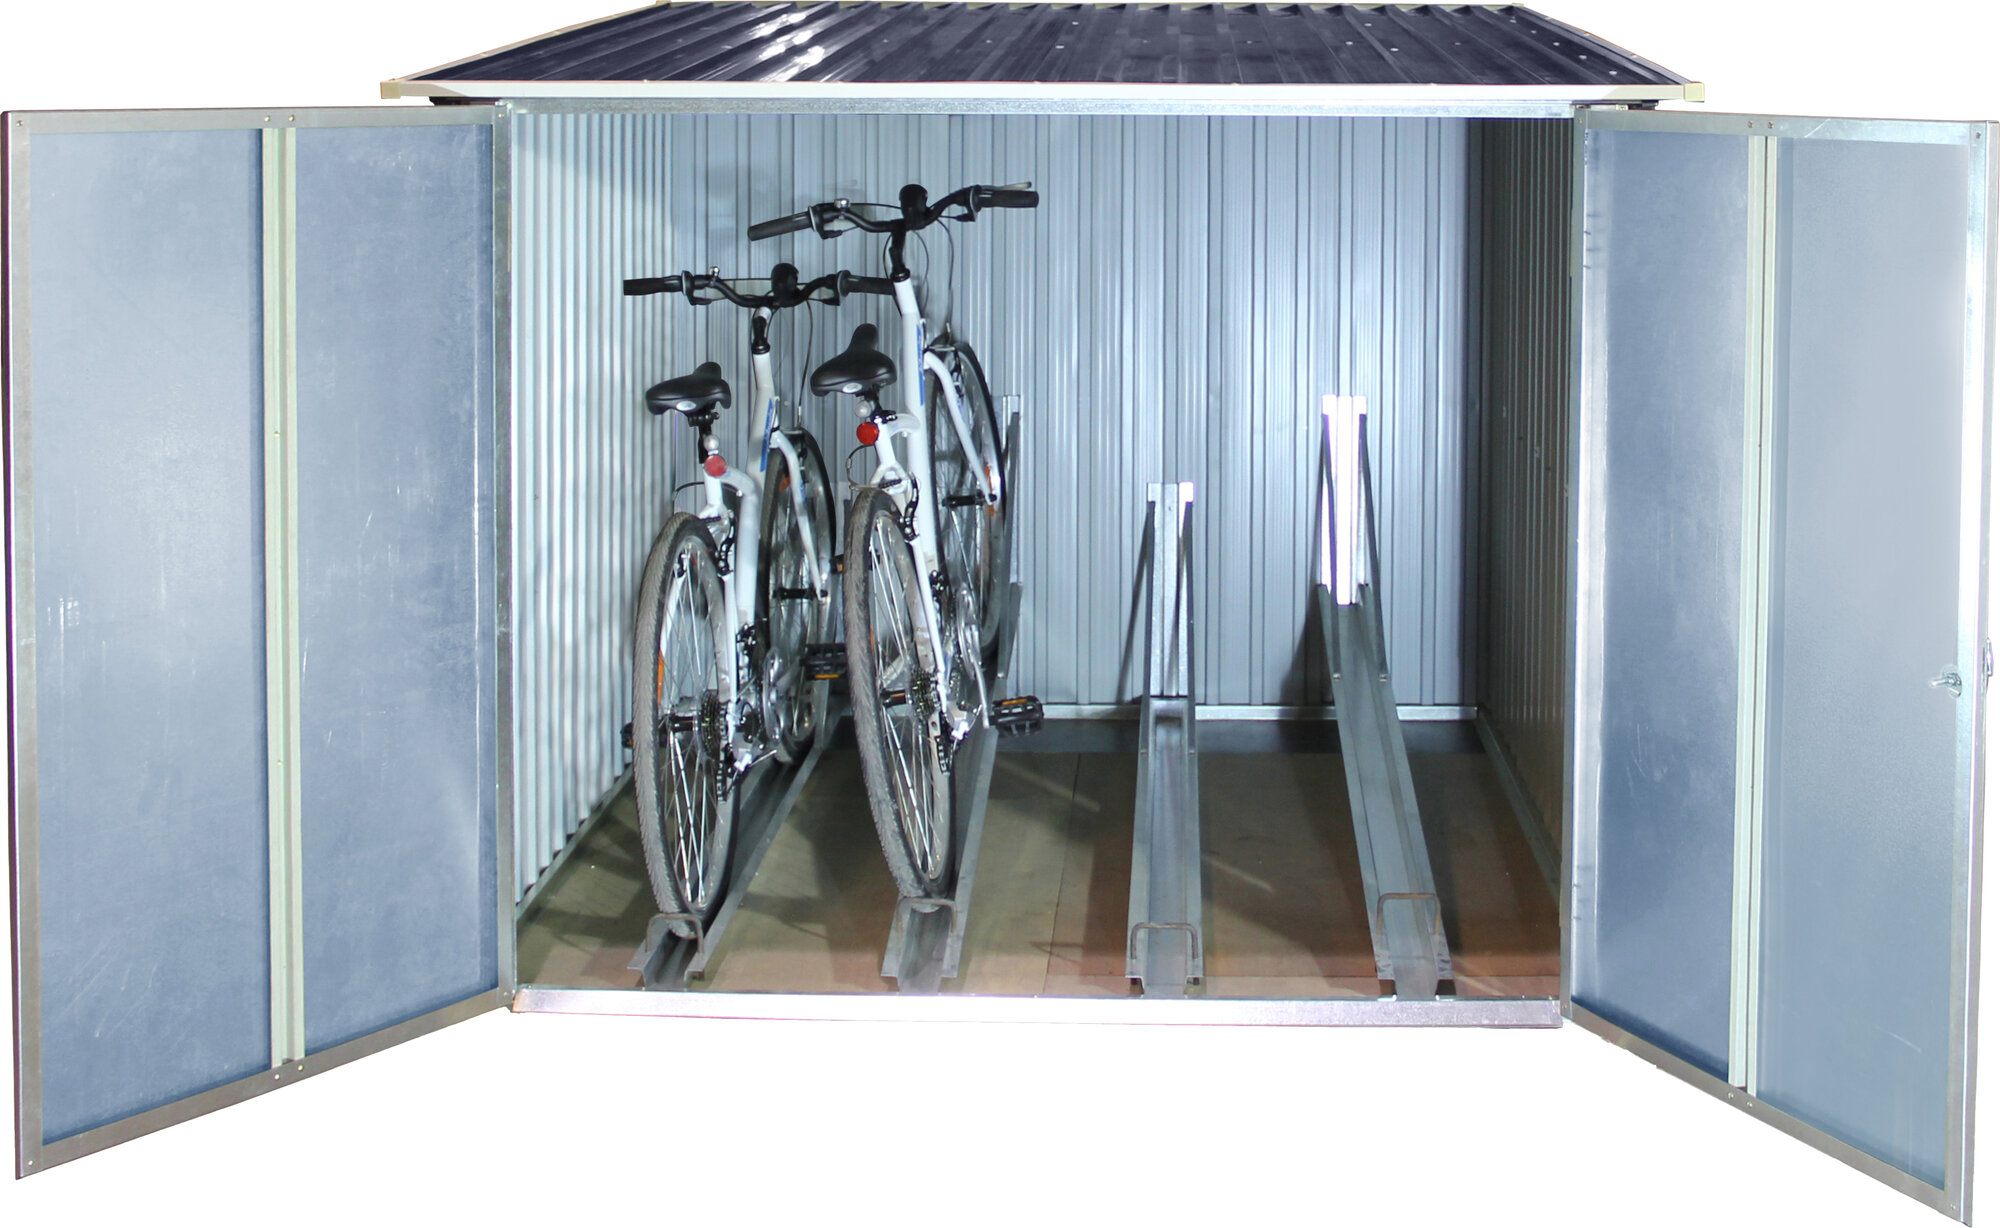 tepro 1 9 m x 1 9 m fahrradgarage ebay. Black Bedroom Furniture Sets. Home Design Ideas